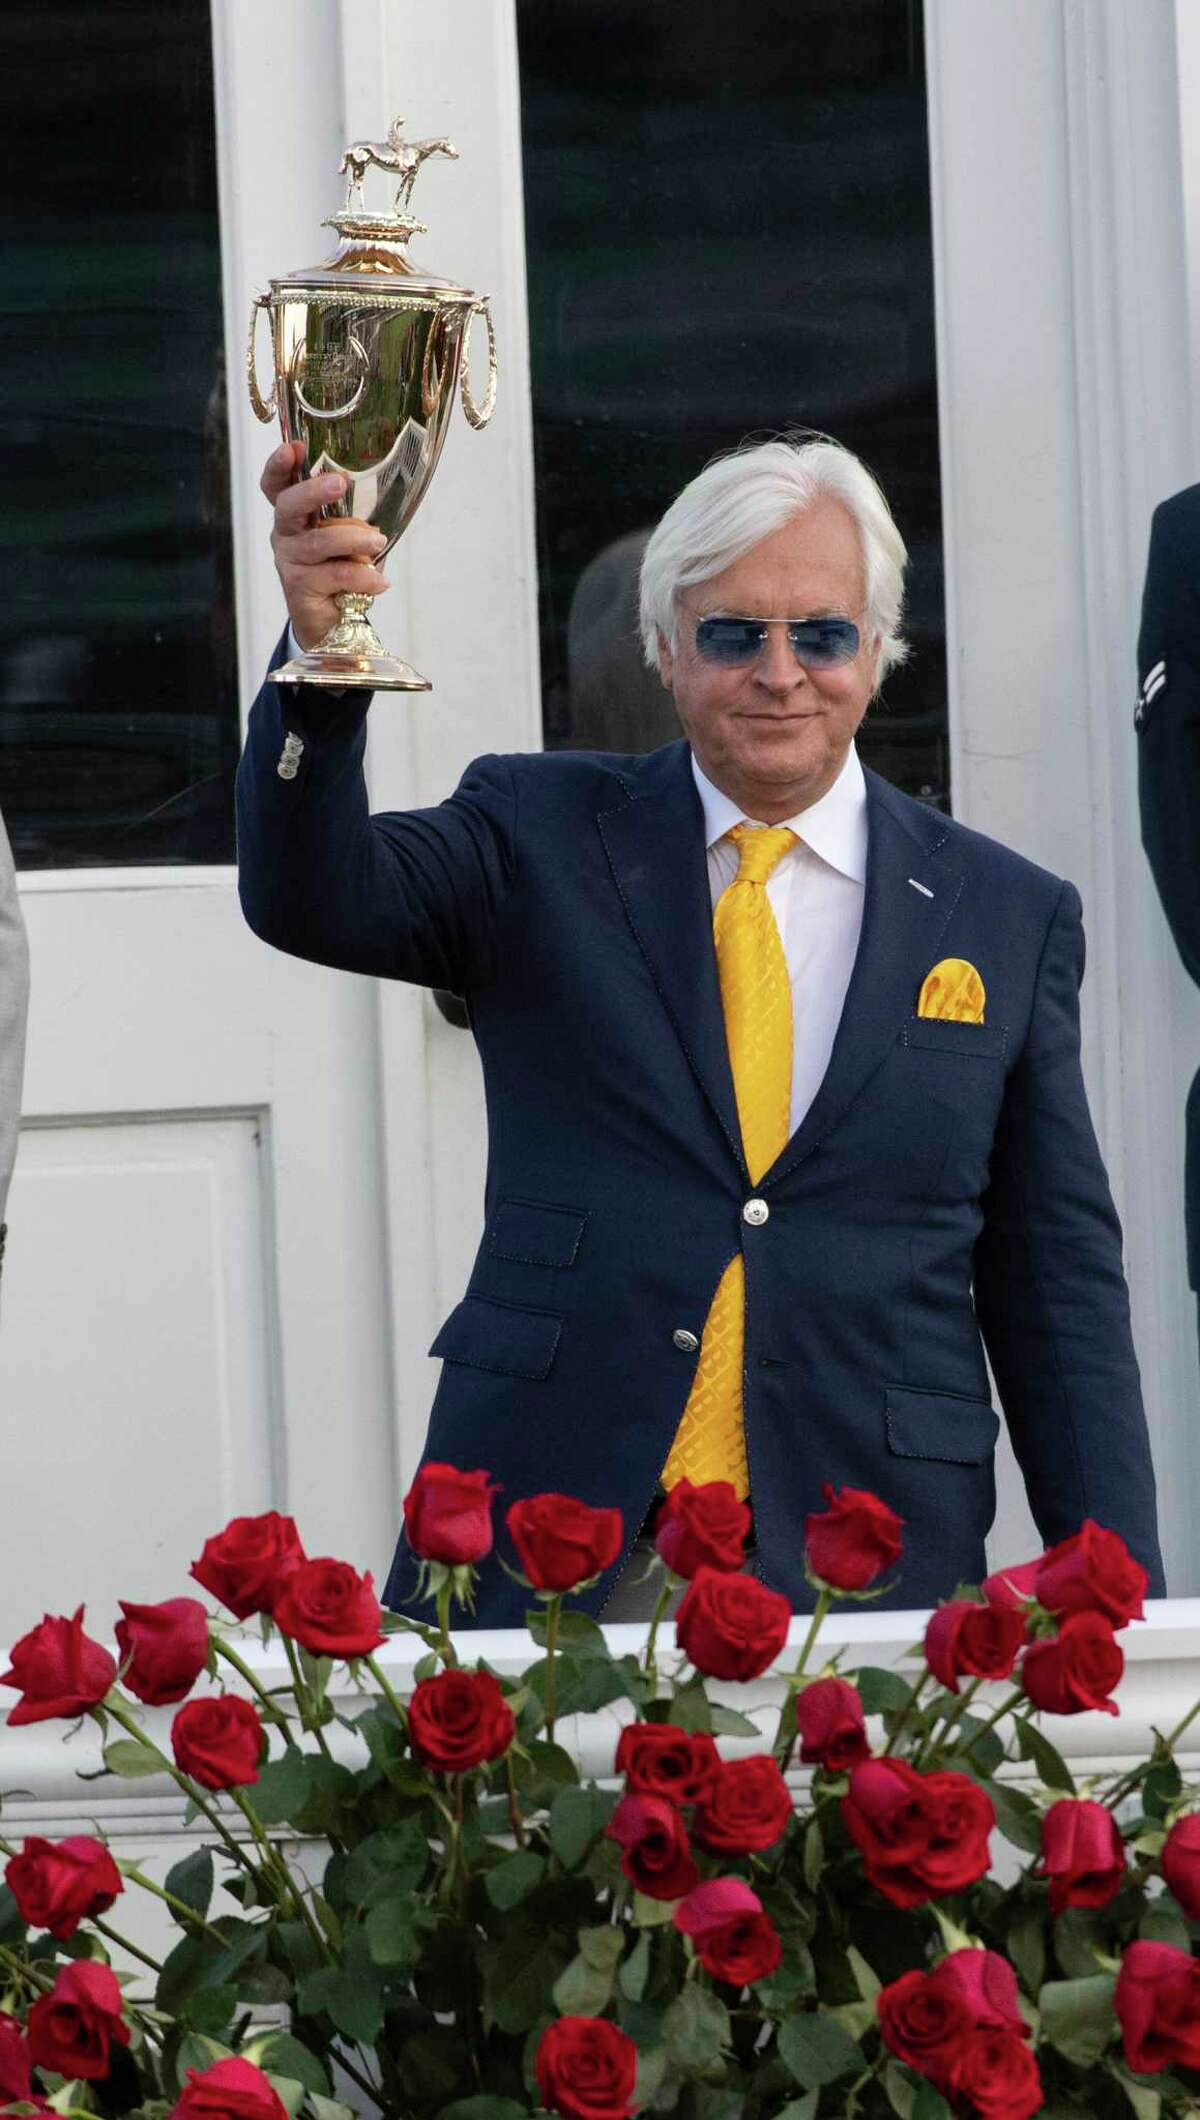 Trainer Bob Baffert holds the winnerA?•s trophy aloft after his charge Authentic with jockey John Velazquez won the 146th running of the Kentucky Derby at Churchill Downs Race Course Saturday Sept 5, 2020 in Louisville, KY. Photo by Skip Dickstein/Special to the Times Union